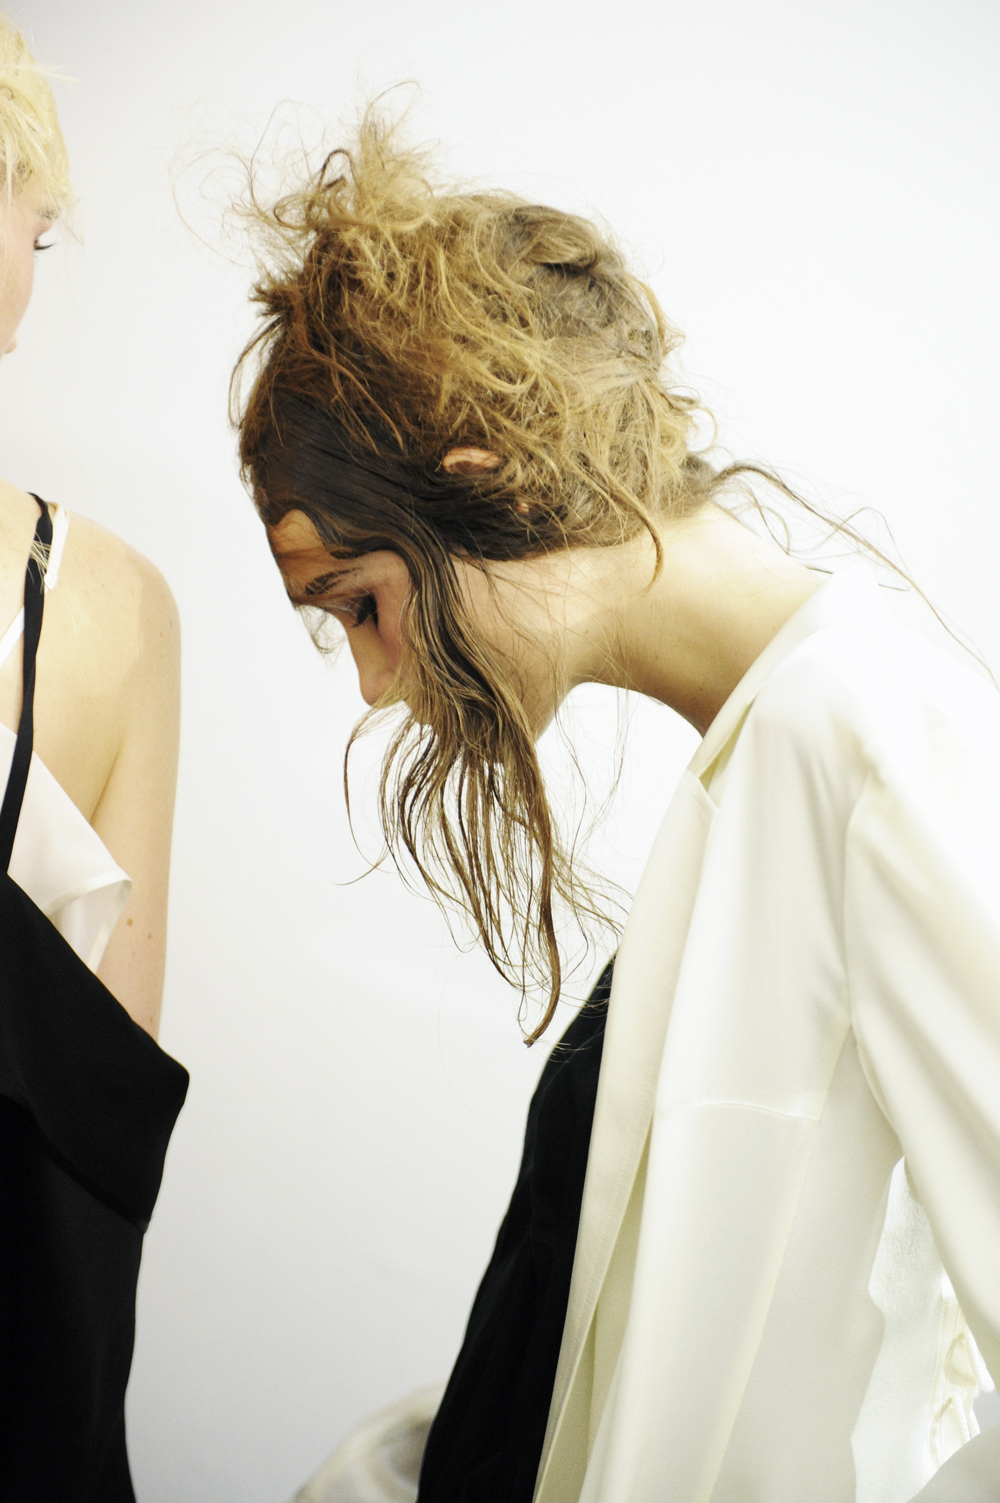 yohji yamamoto behind the scenes at jeu de paume photography by  by elise toide | S/TUDIO